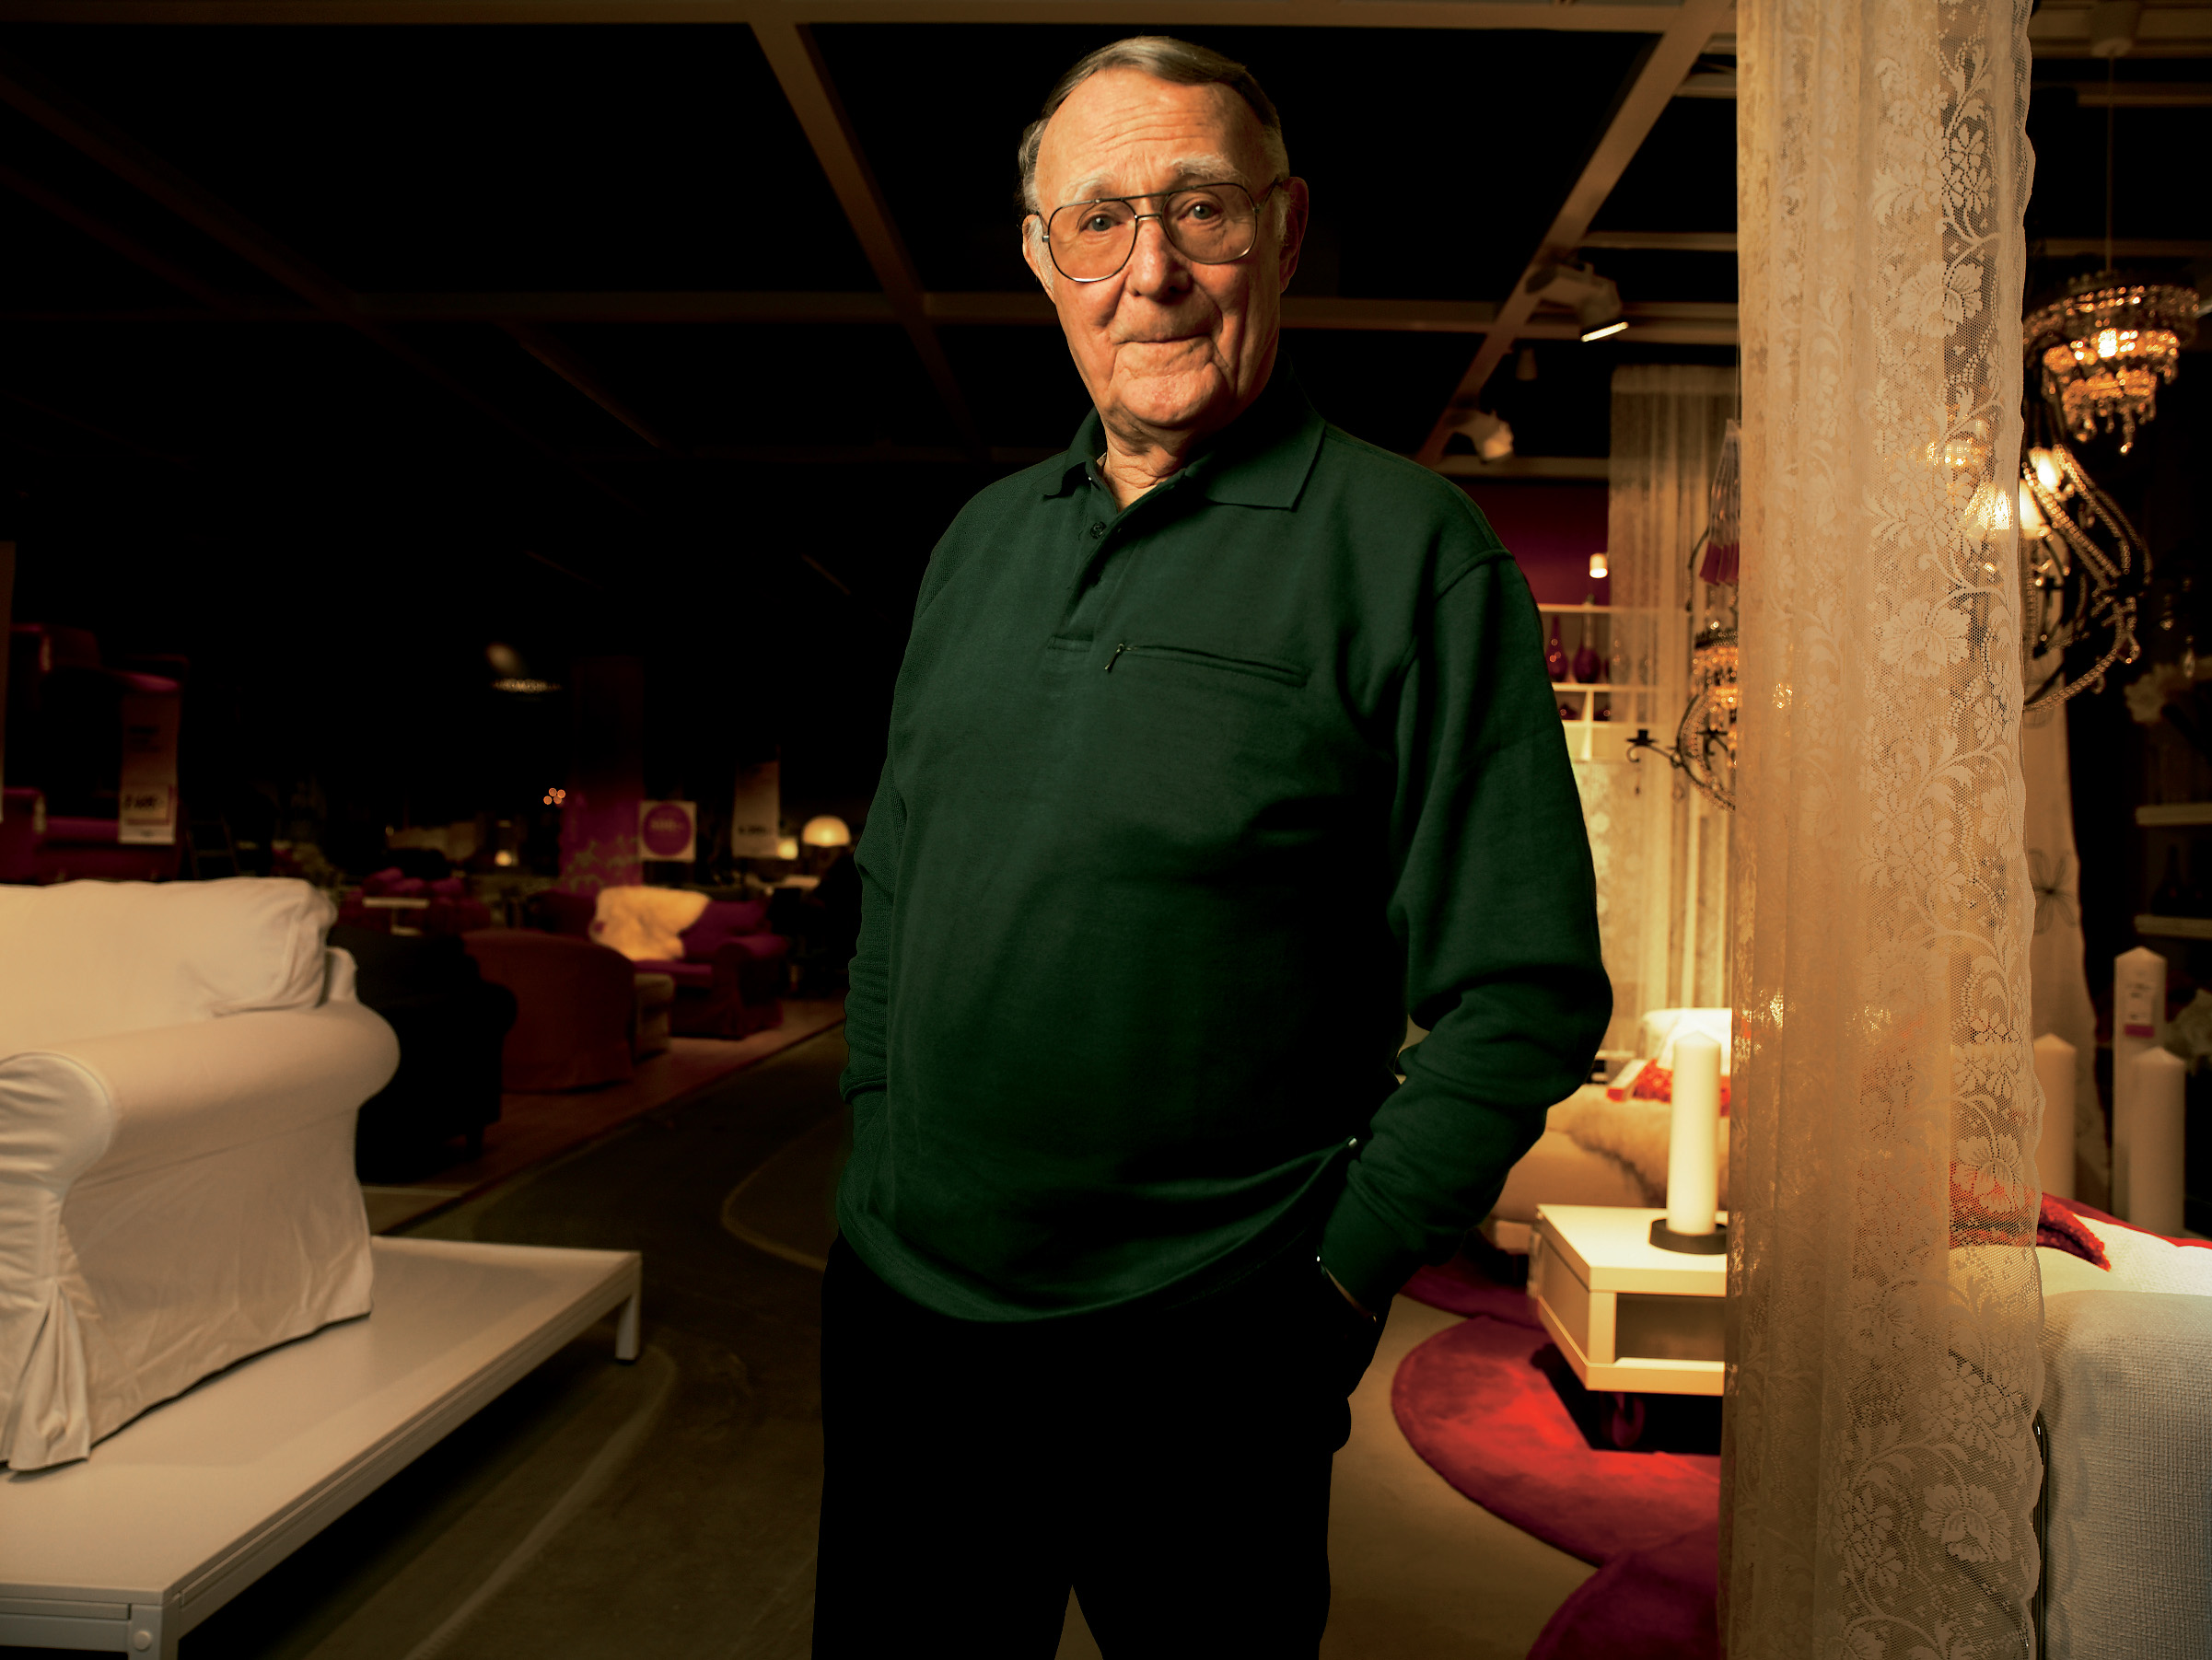 ingvar-kamprad-jobstreet-talent-of-the-month-founder-of-IKEA-1